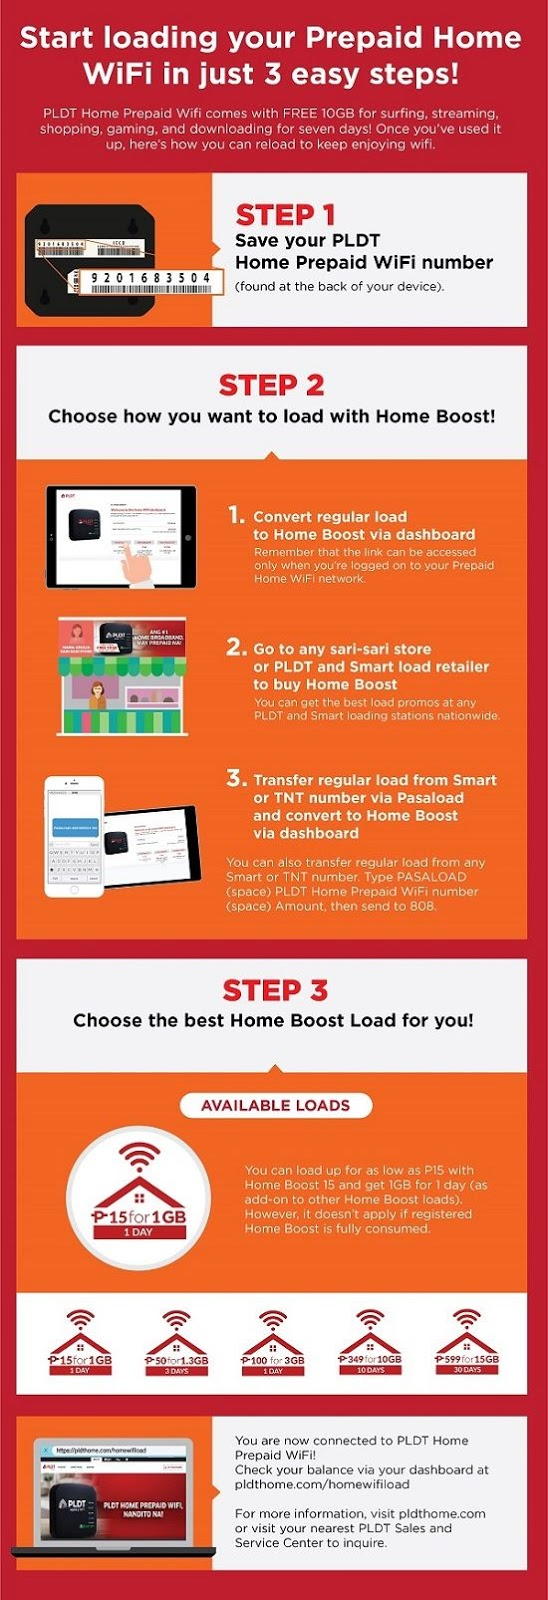 How to reload PLDT Prepaid Home WiFi in 3 easy steps